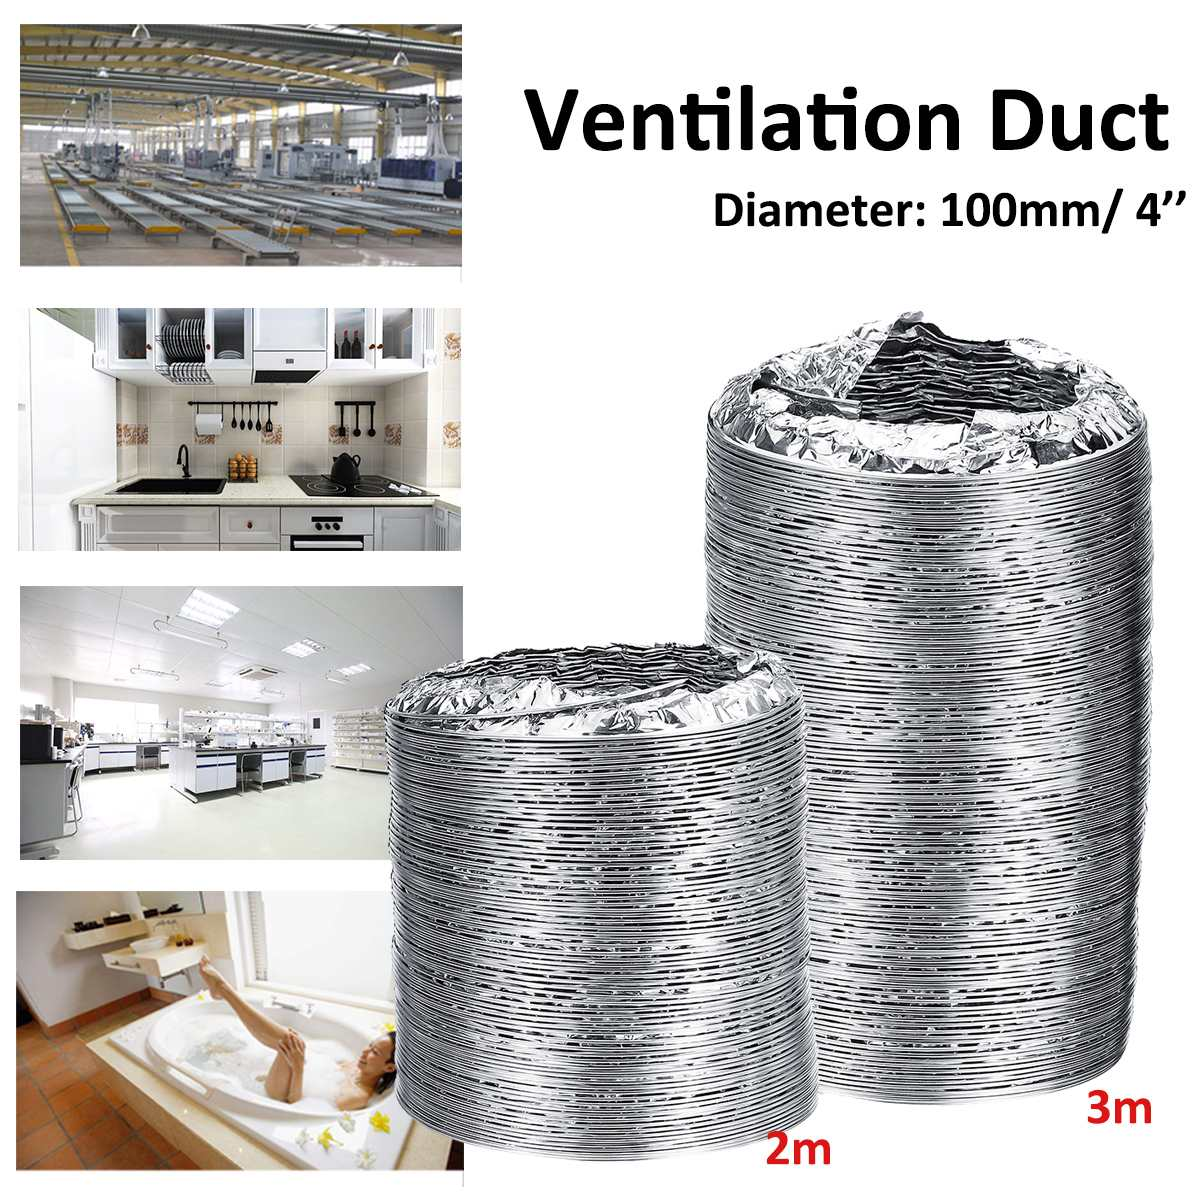 3/2 Meter Length 4 Inch 100mm Aluminum Tube Ventilation Hose Exhaust Pipe Duct Flexible Tube For Air System Vent Home Bathroom